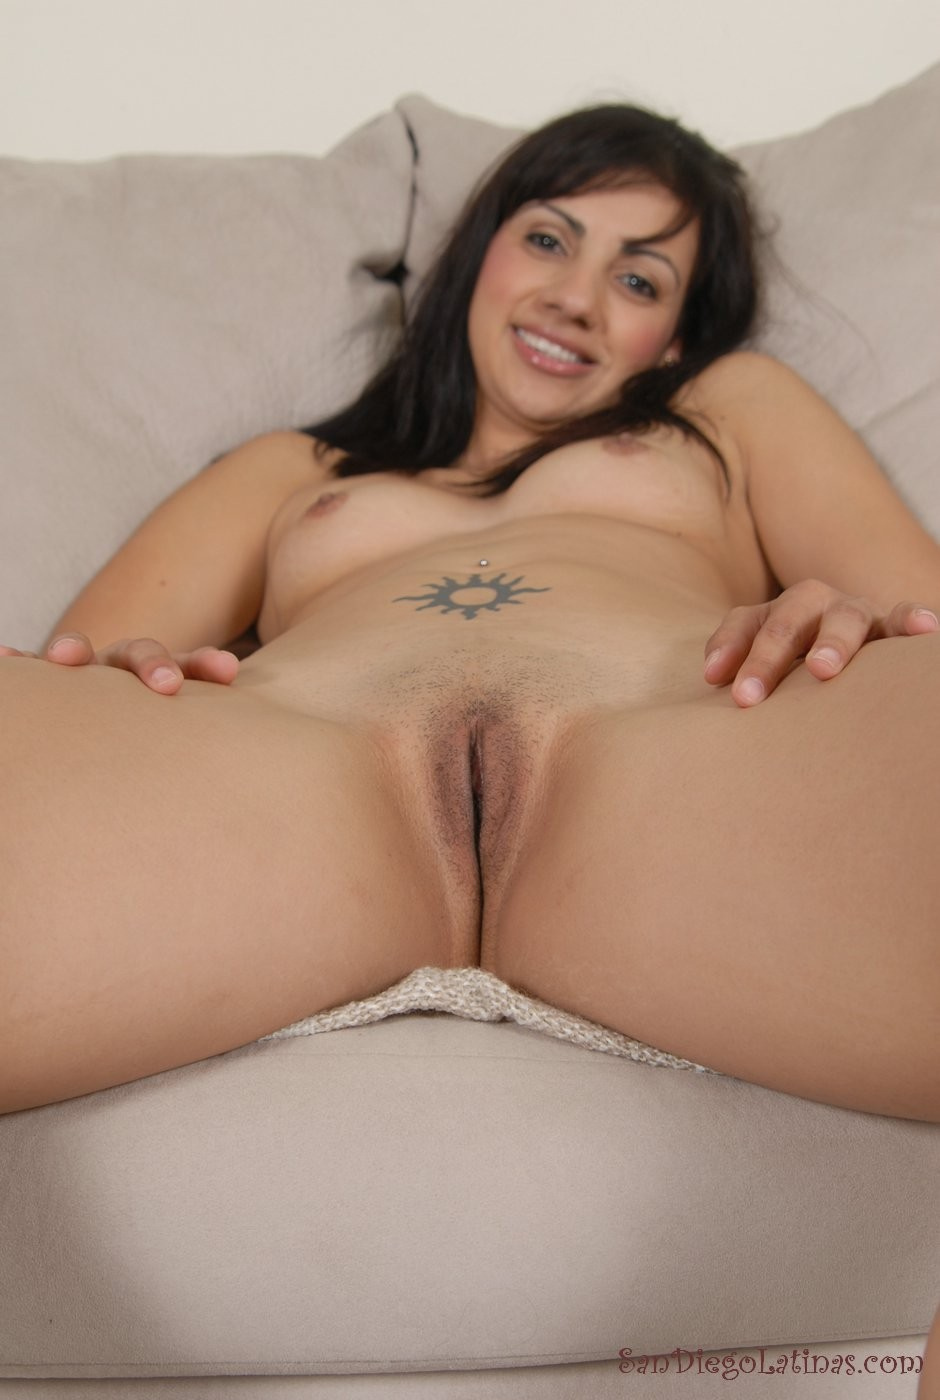 mexican-girls-naked-with-shaved-pussy-hot-cheerleader-fucks-big-dick